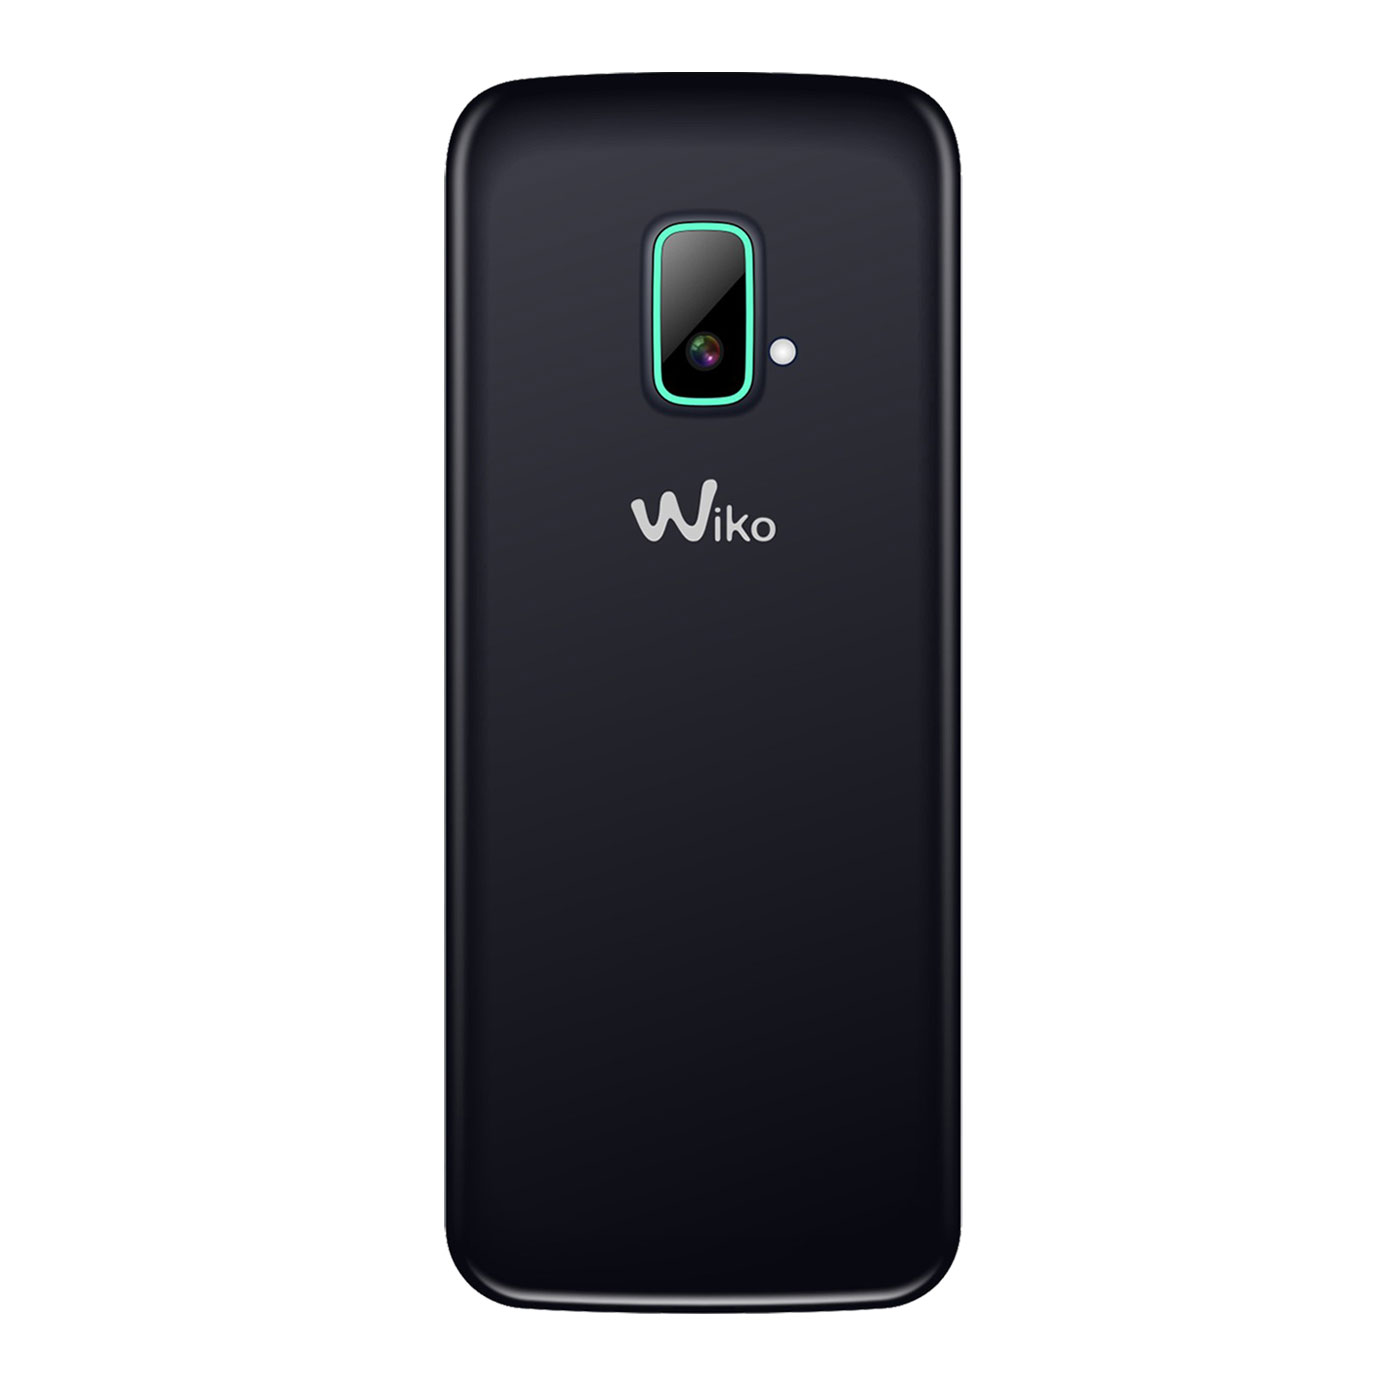 wiko riff noir mobile smartphone wiko sur. Black Bedroom Furniture Sets. Home Design Ideas